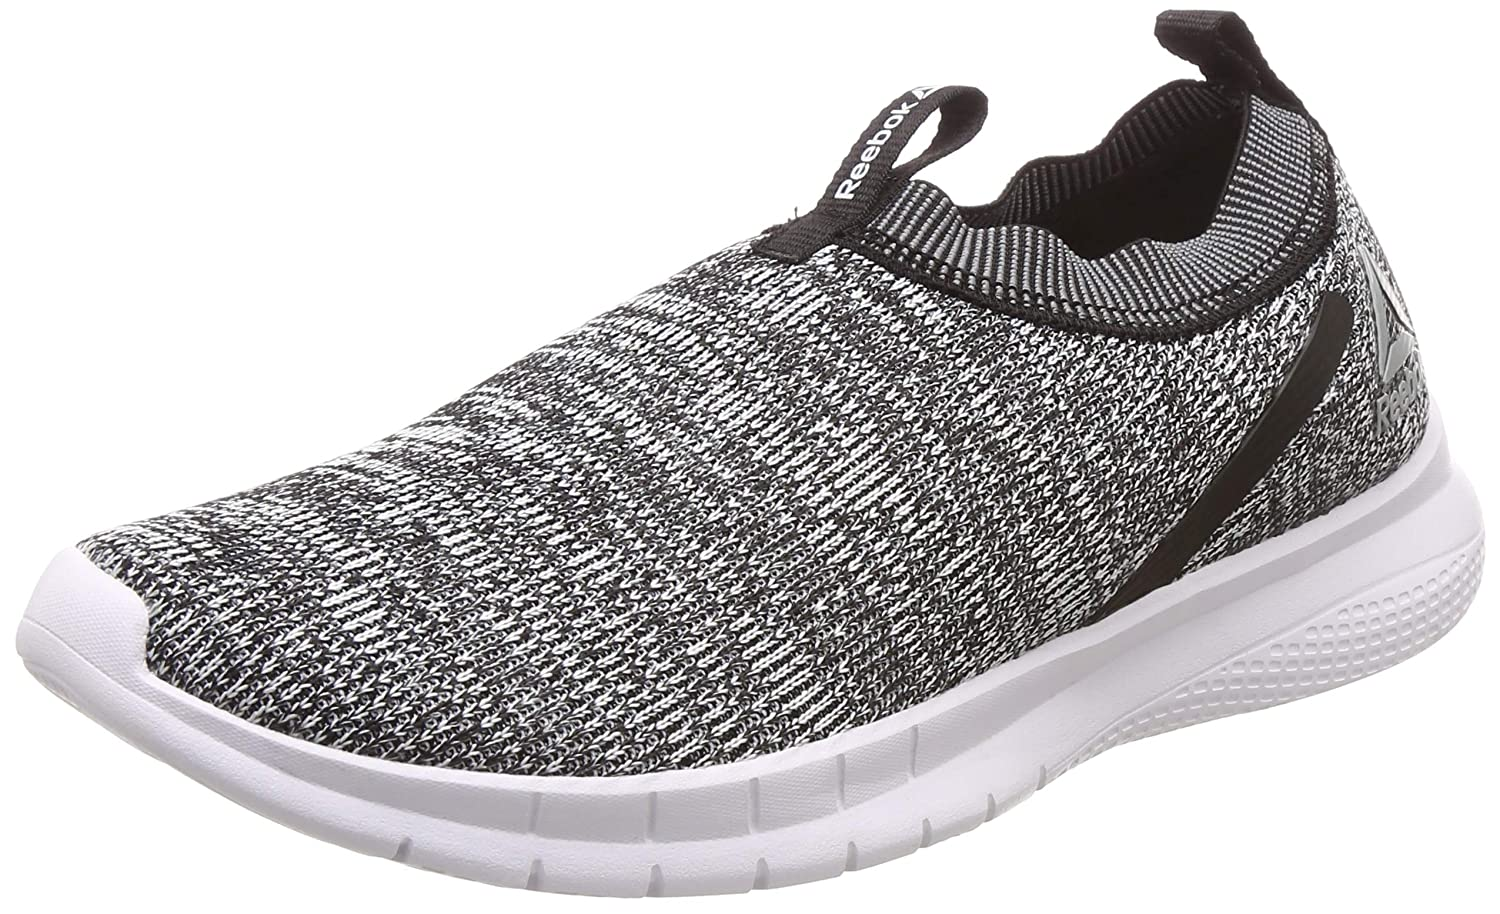 cbcb4ab8dafe Reebok Men s Delta Slip On Running Shoes  Buy Online at Low Prices in India  - Amazon.in